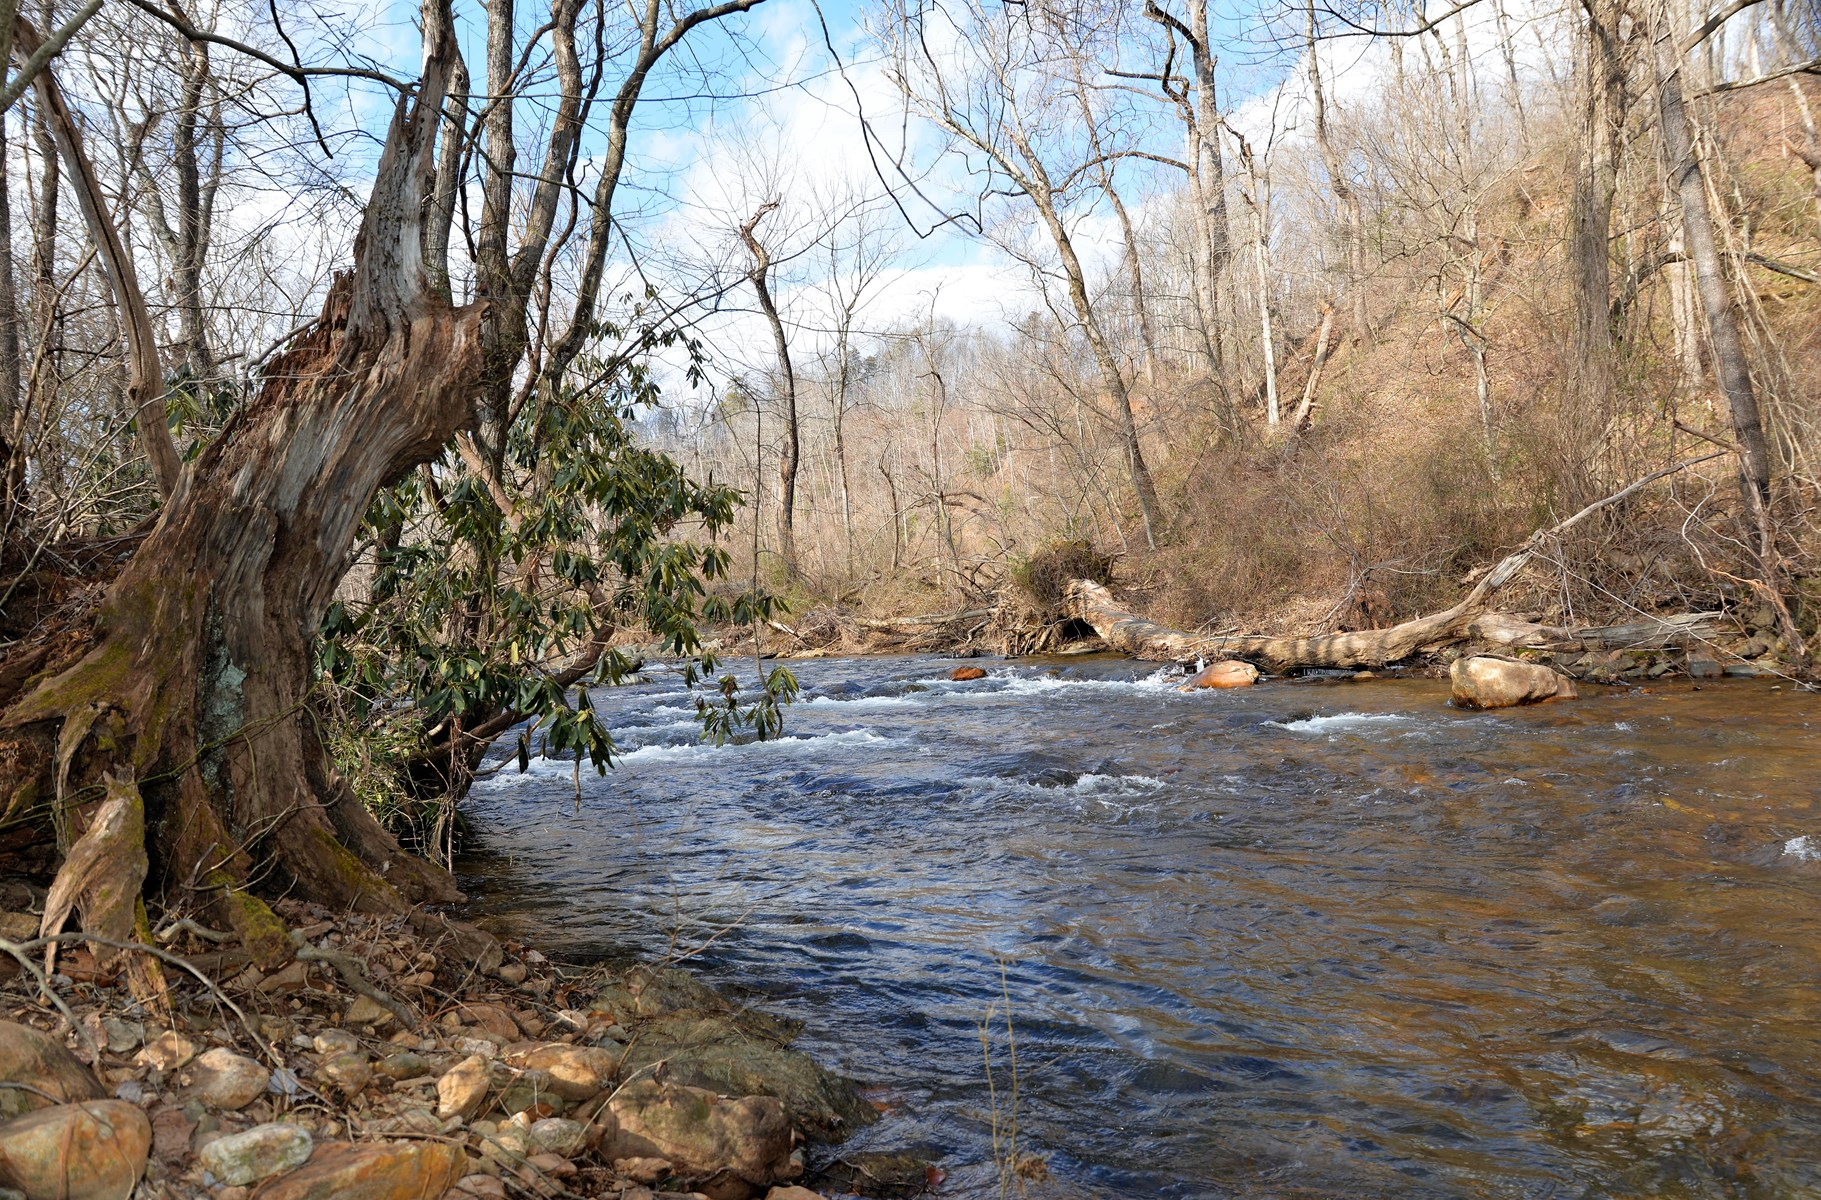 Land for sale on Mitchell River in Dobson